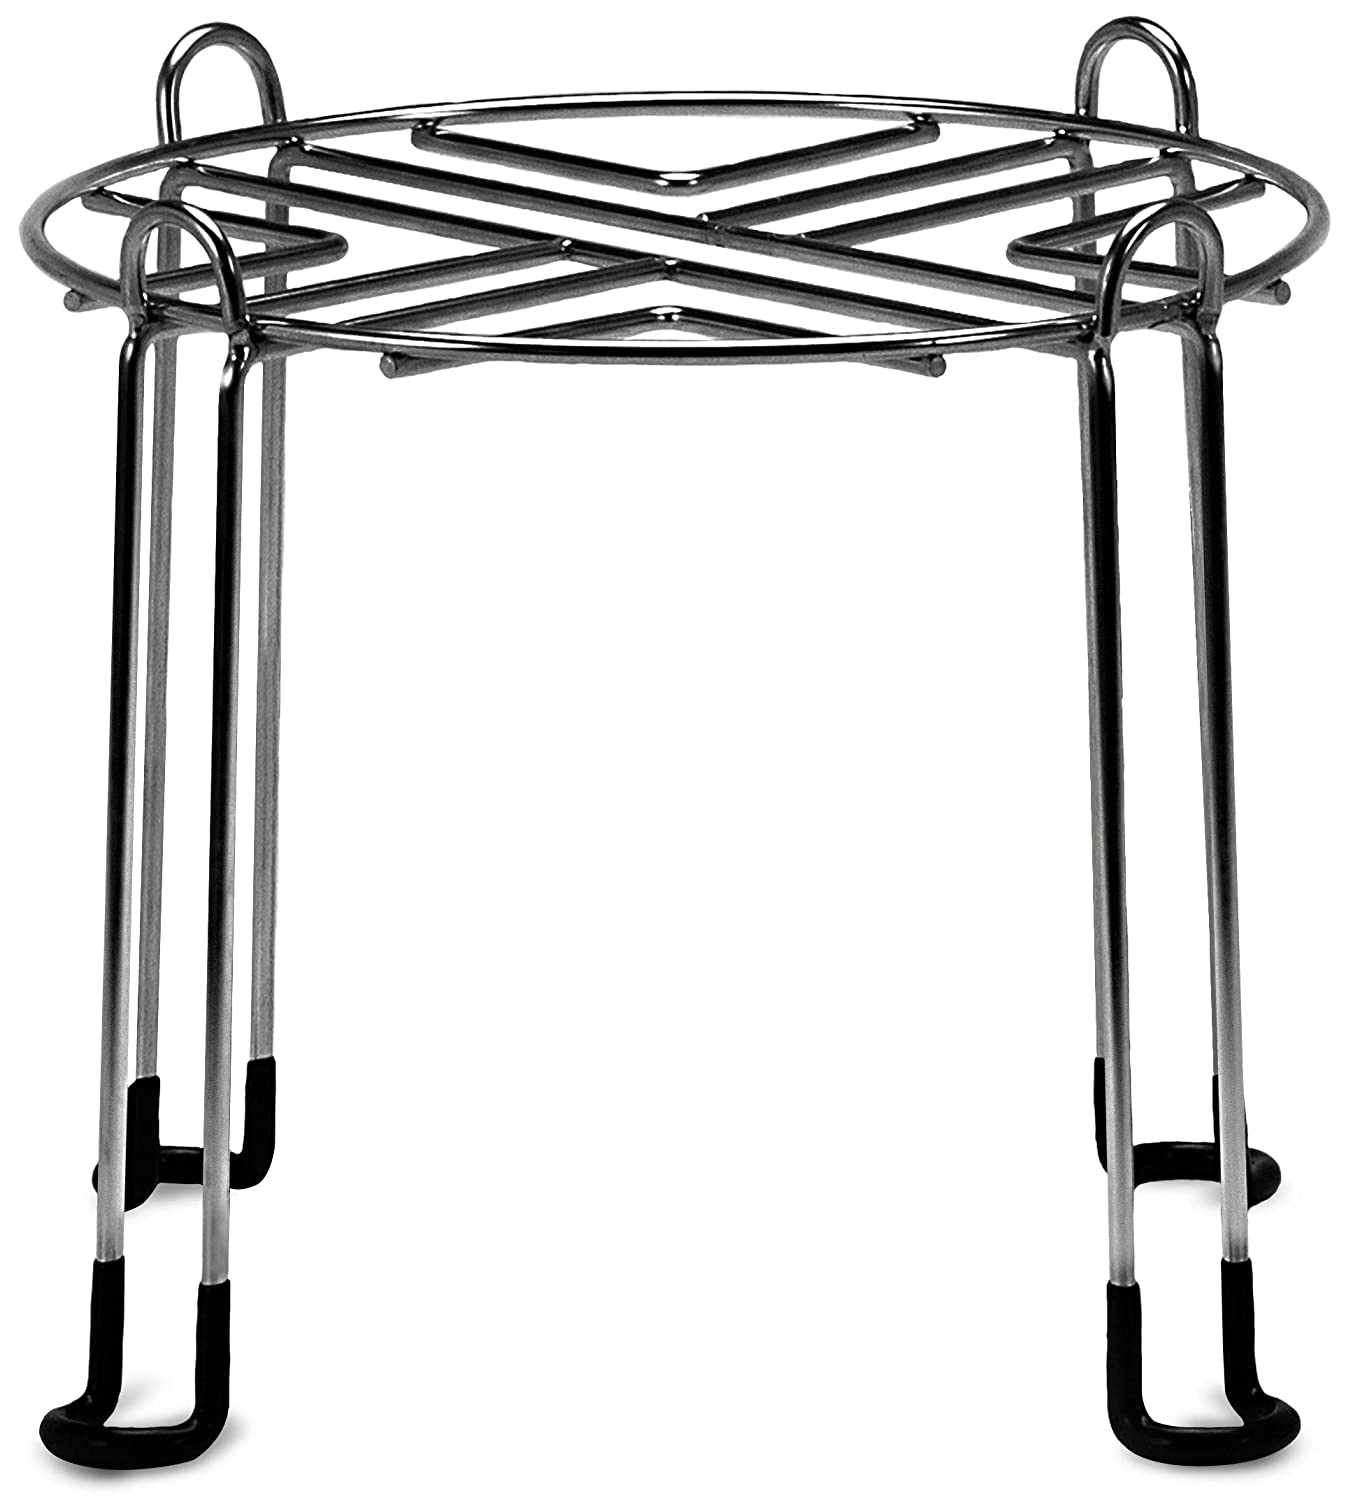 """IMPRESA Water Filter Stand 10"""" Tall by 9"""" Wide Compatible with Berkey, Countertop Steel Stand for Most Medium Gravity Fed Water Coolers - Quality Stainless Steel - Fills Glasses, Pitchers, Water"""